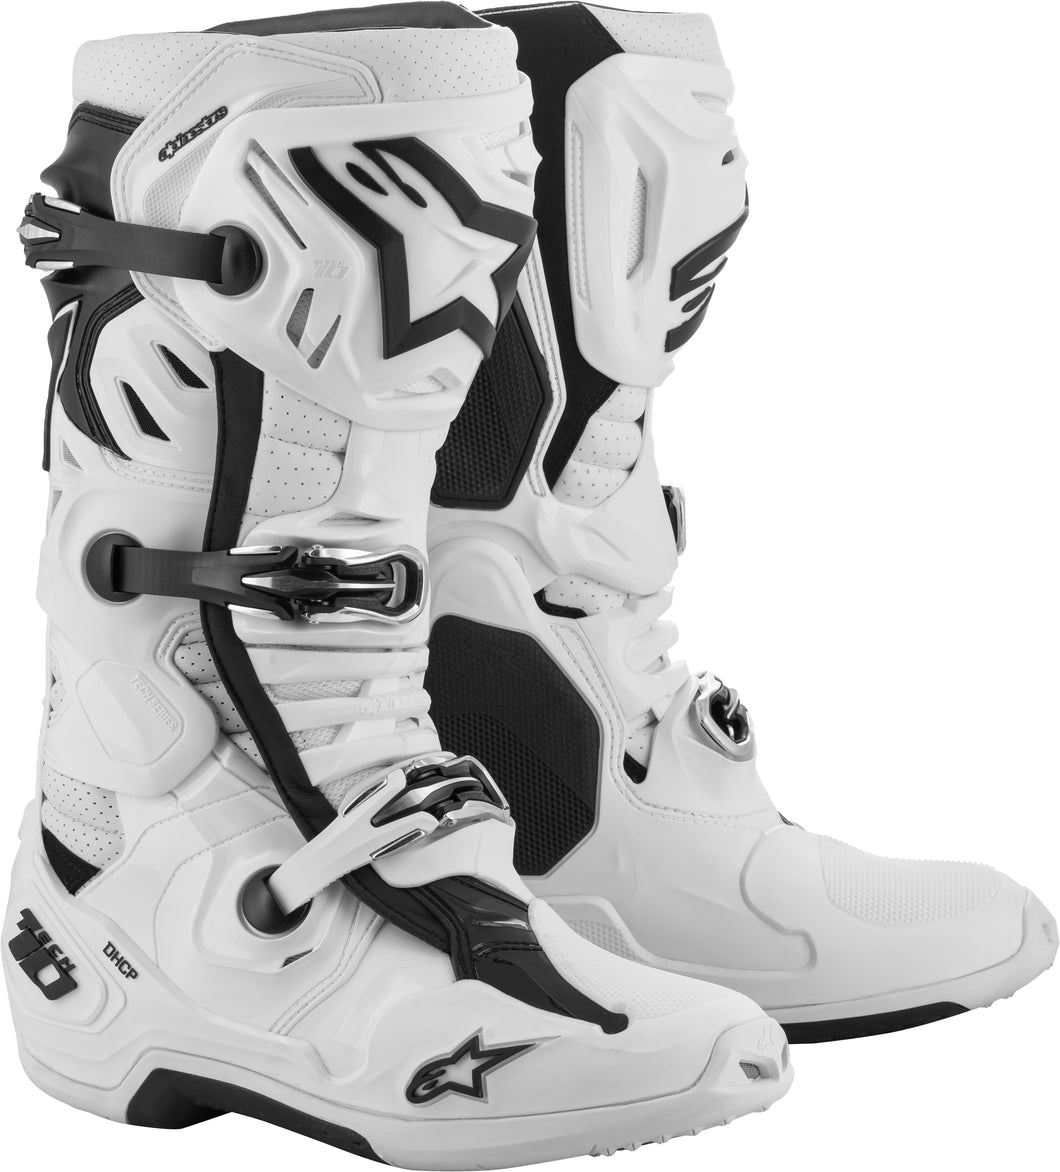 ALPINESTARS | TECH 10 SUPERVENTED BOOTS WHITE SZ 13 | 482-01613